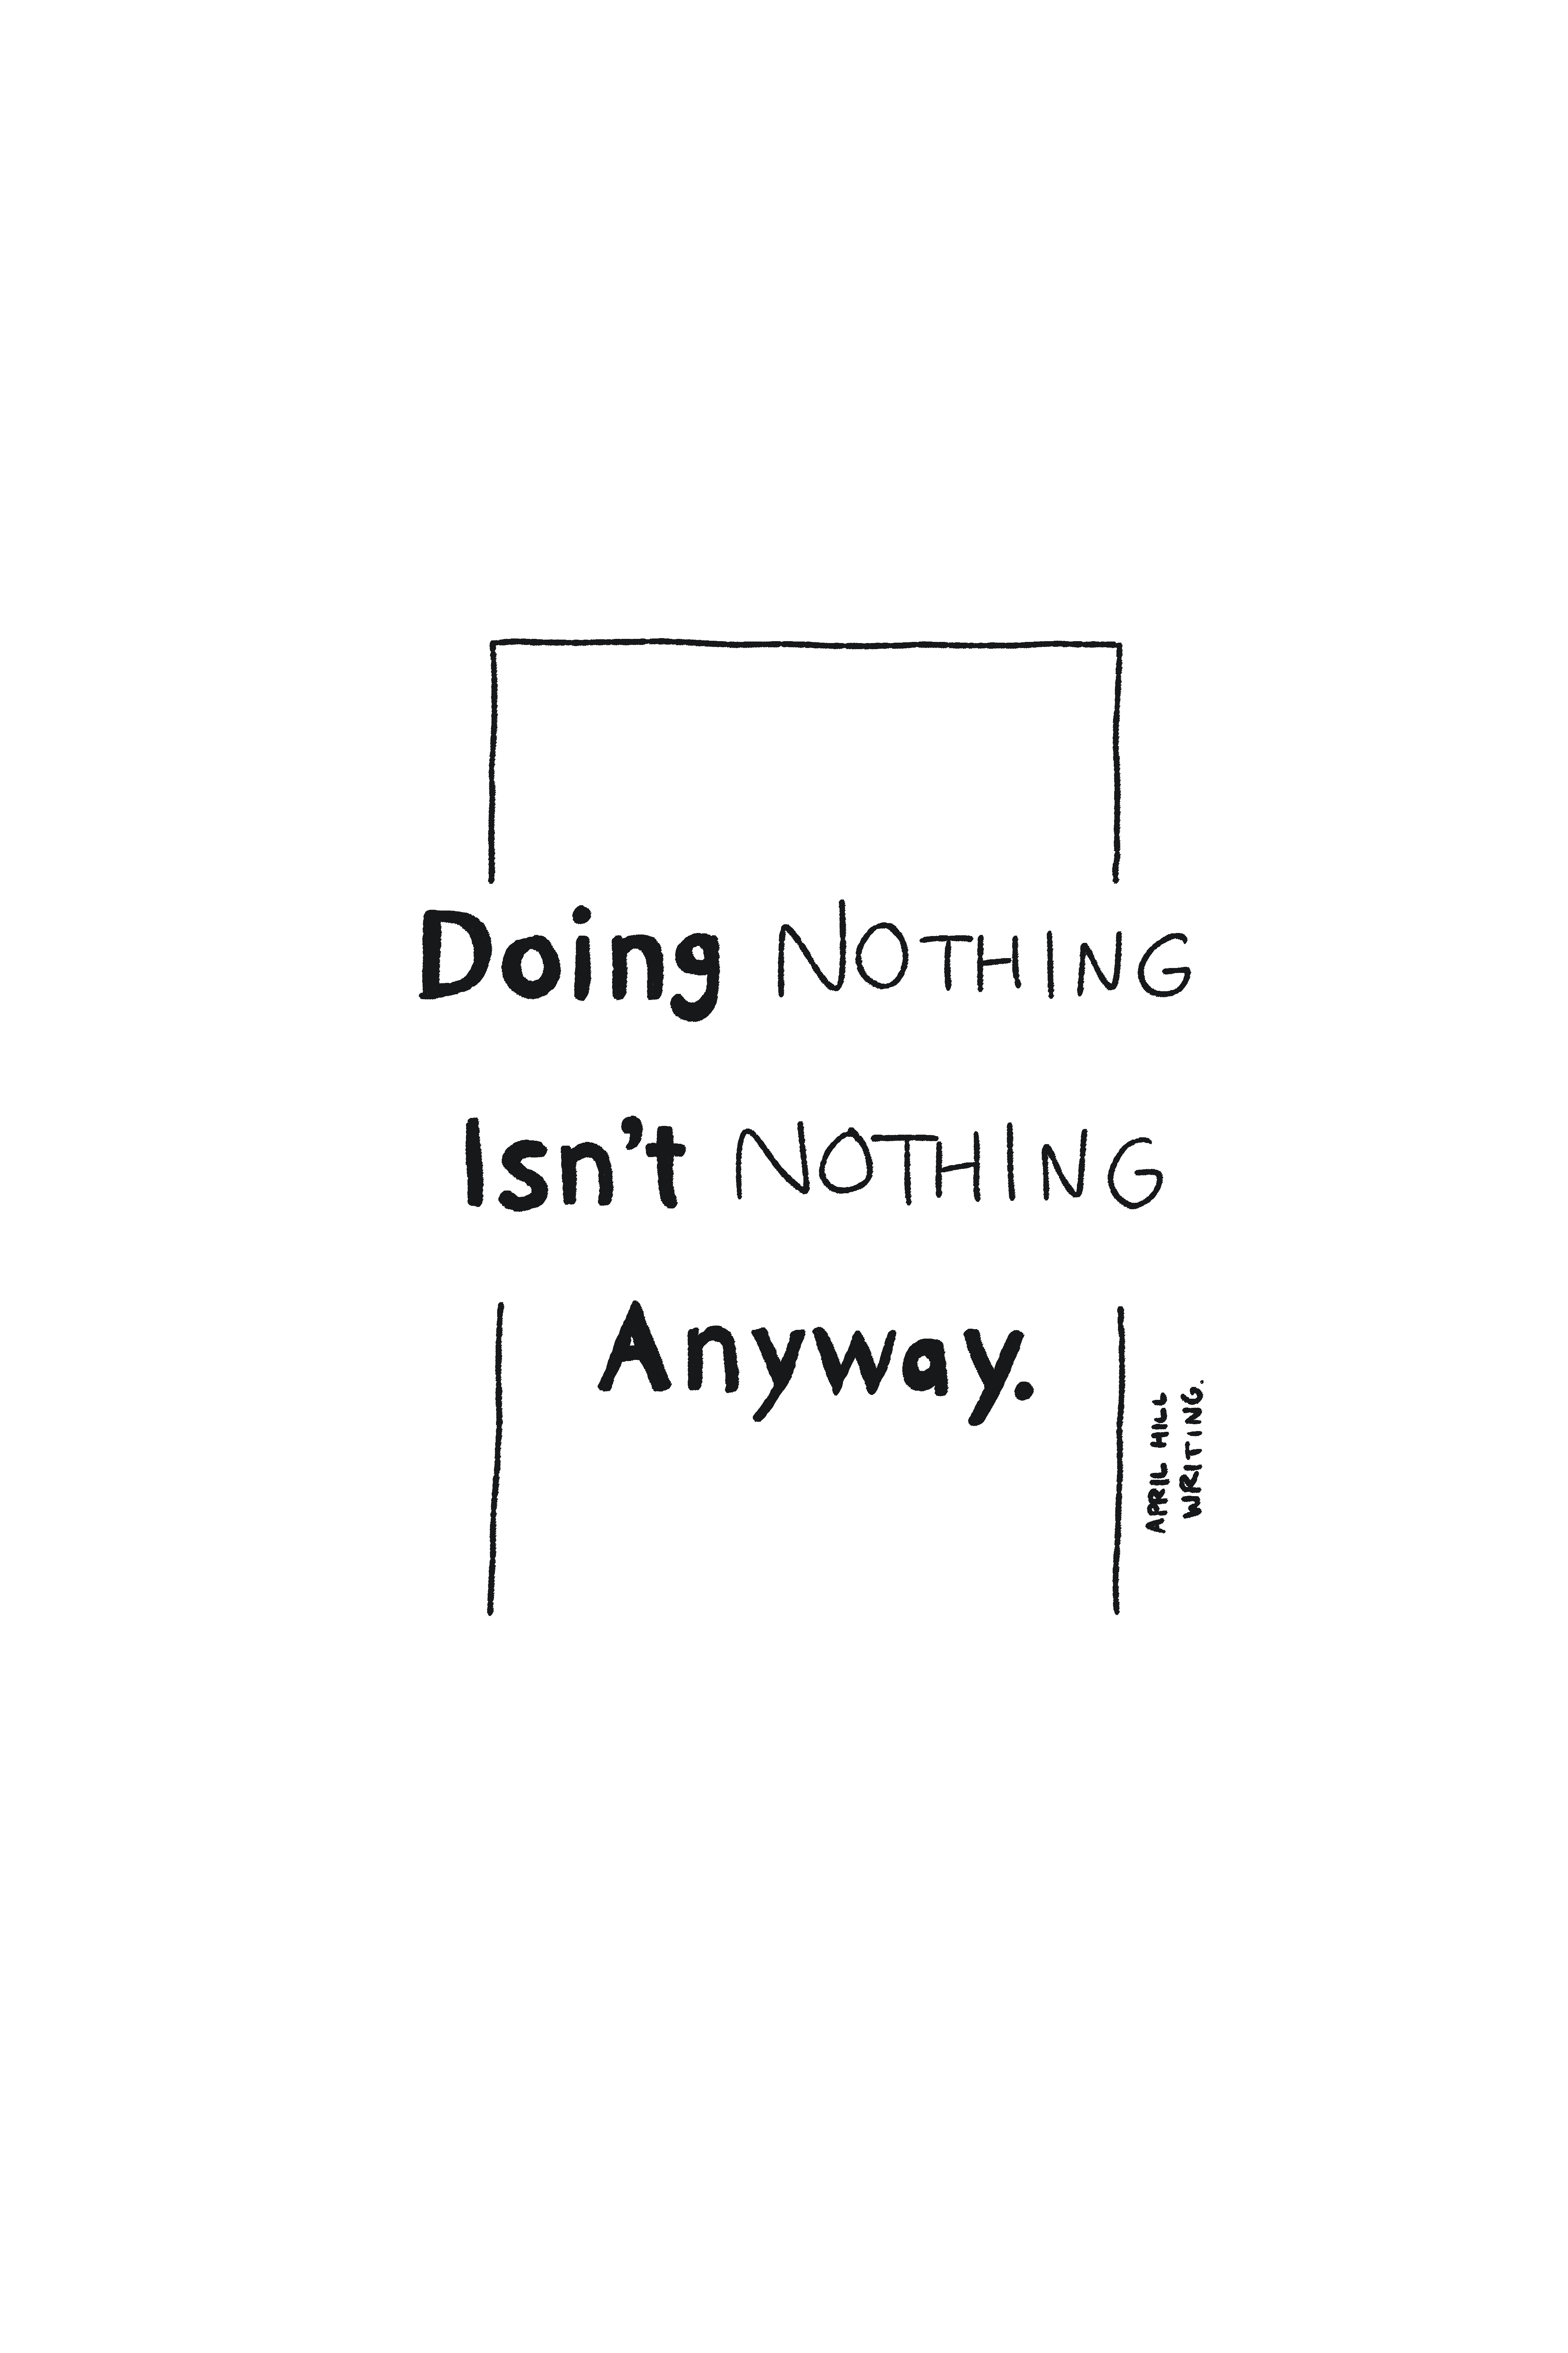 [Image] Doing Nothing.